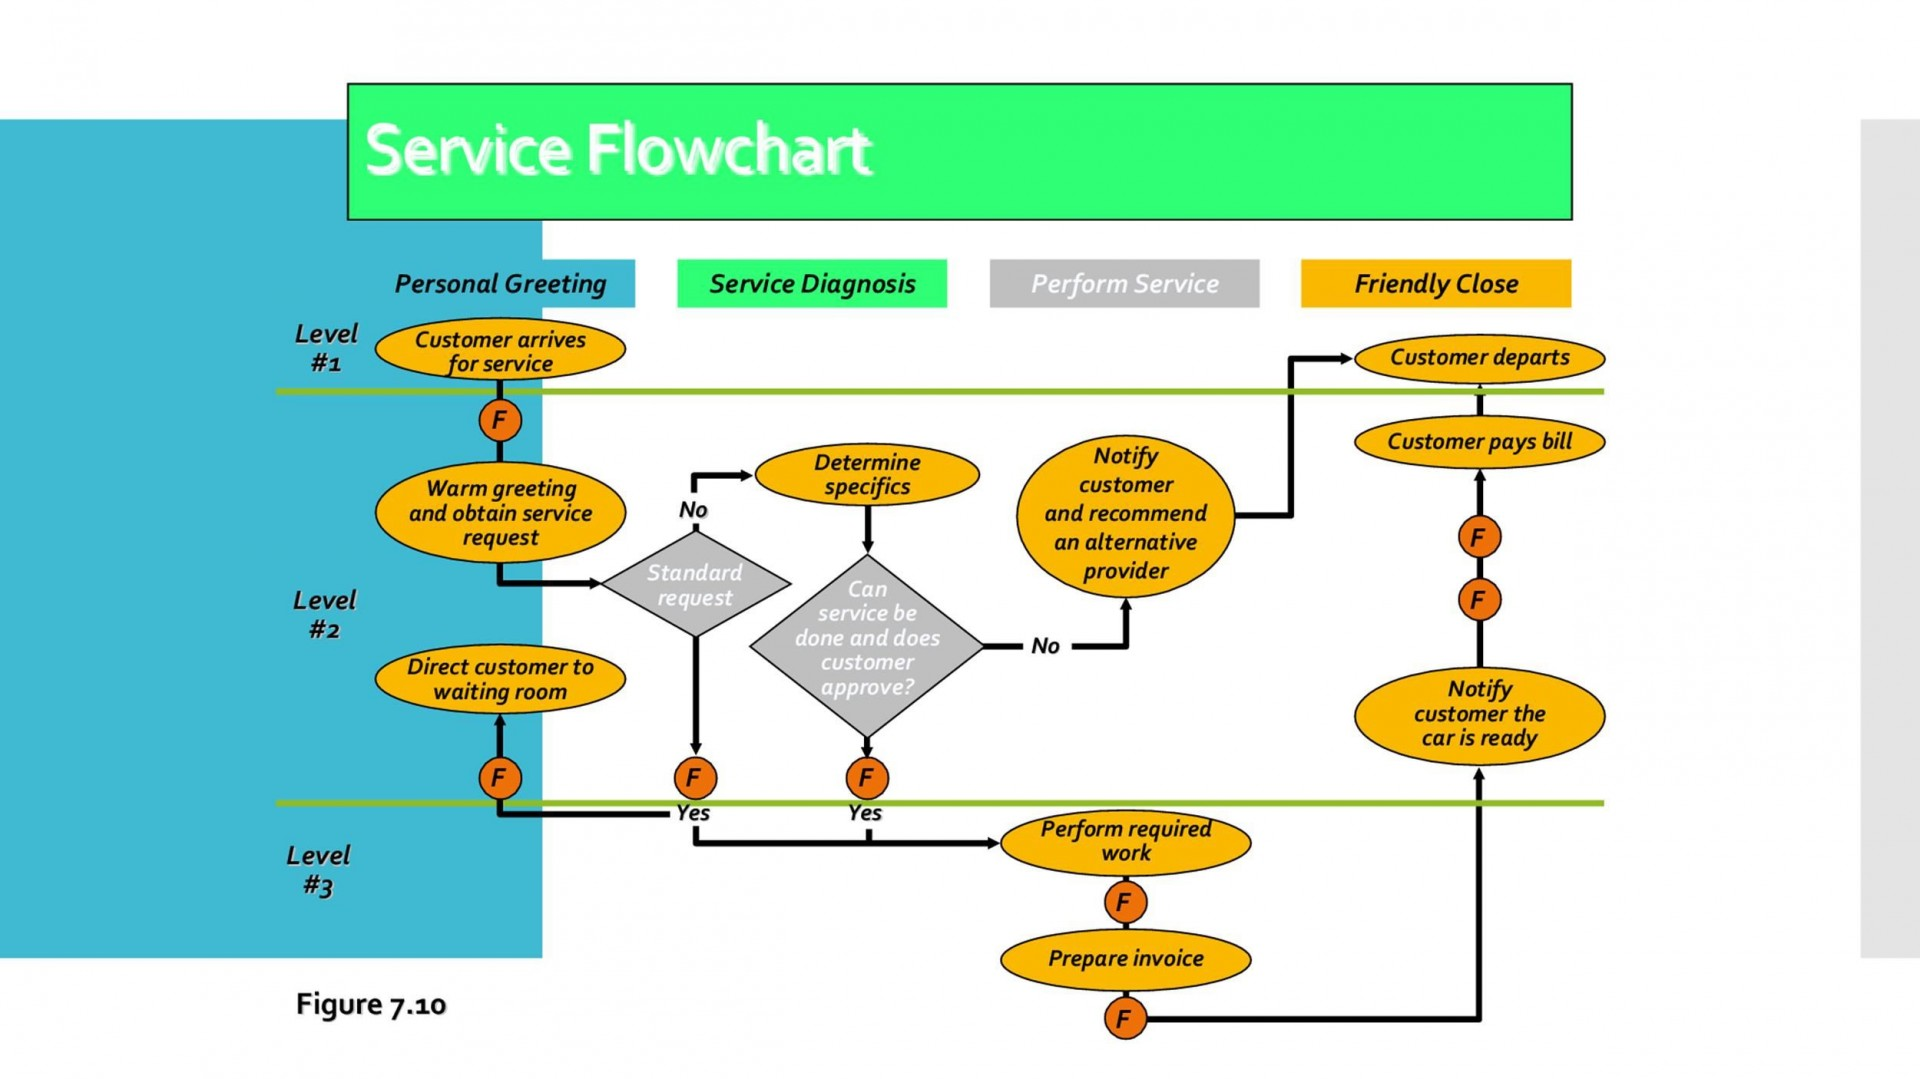 005 Fearsome Proces Flow Chart Template Excel Download Image  Free1920